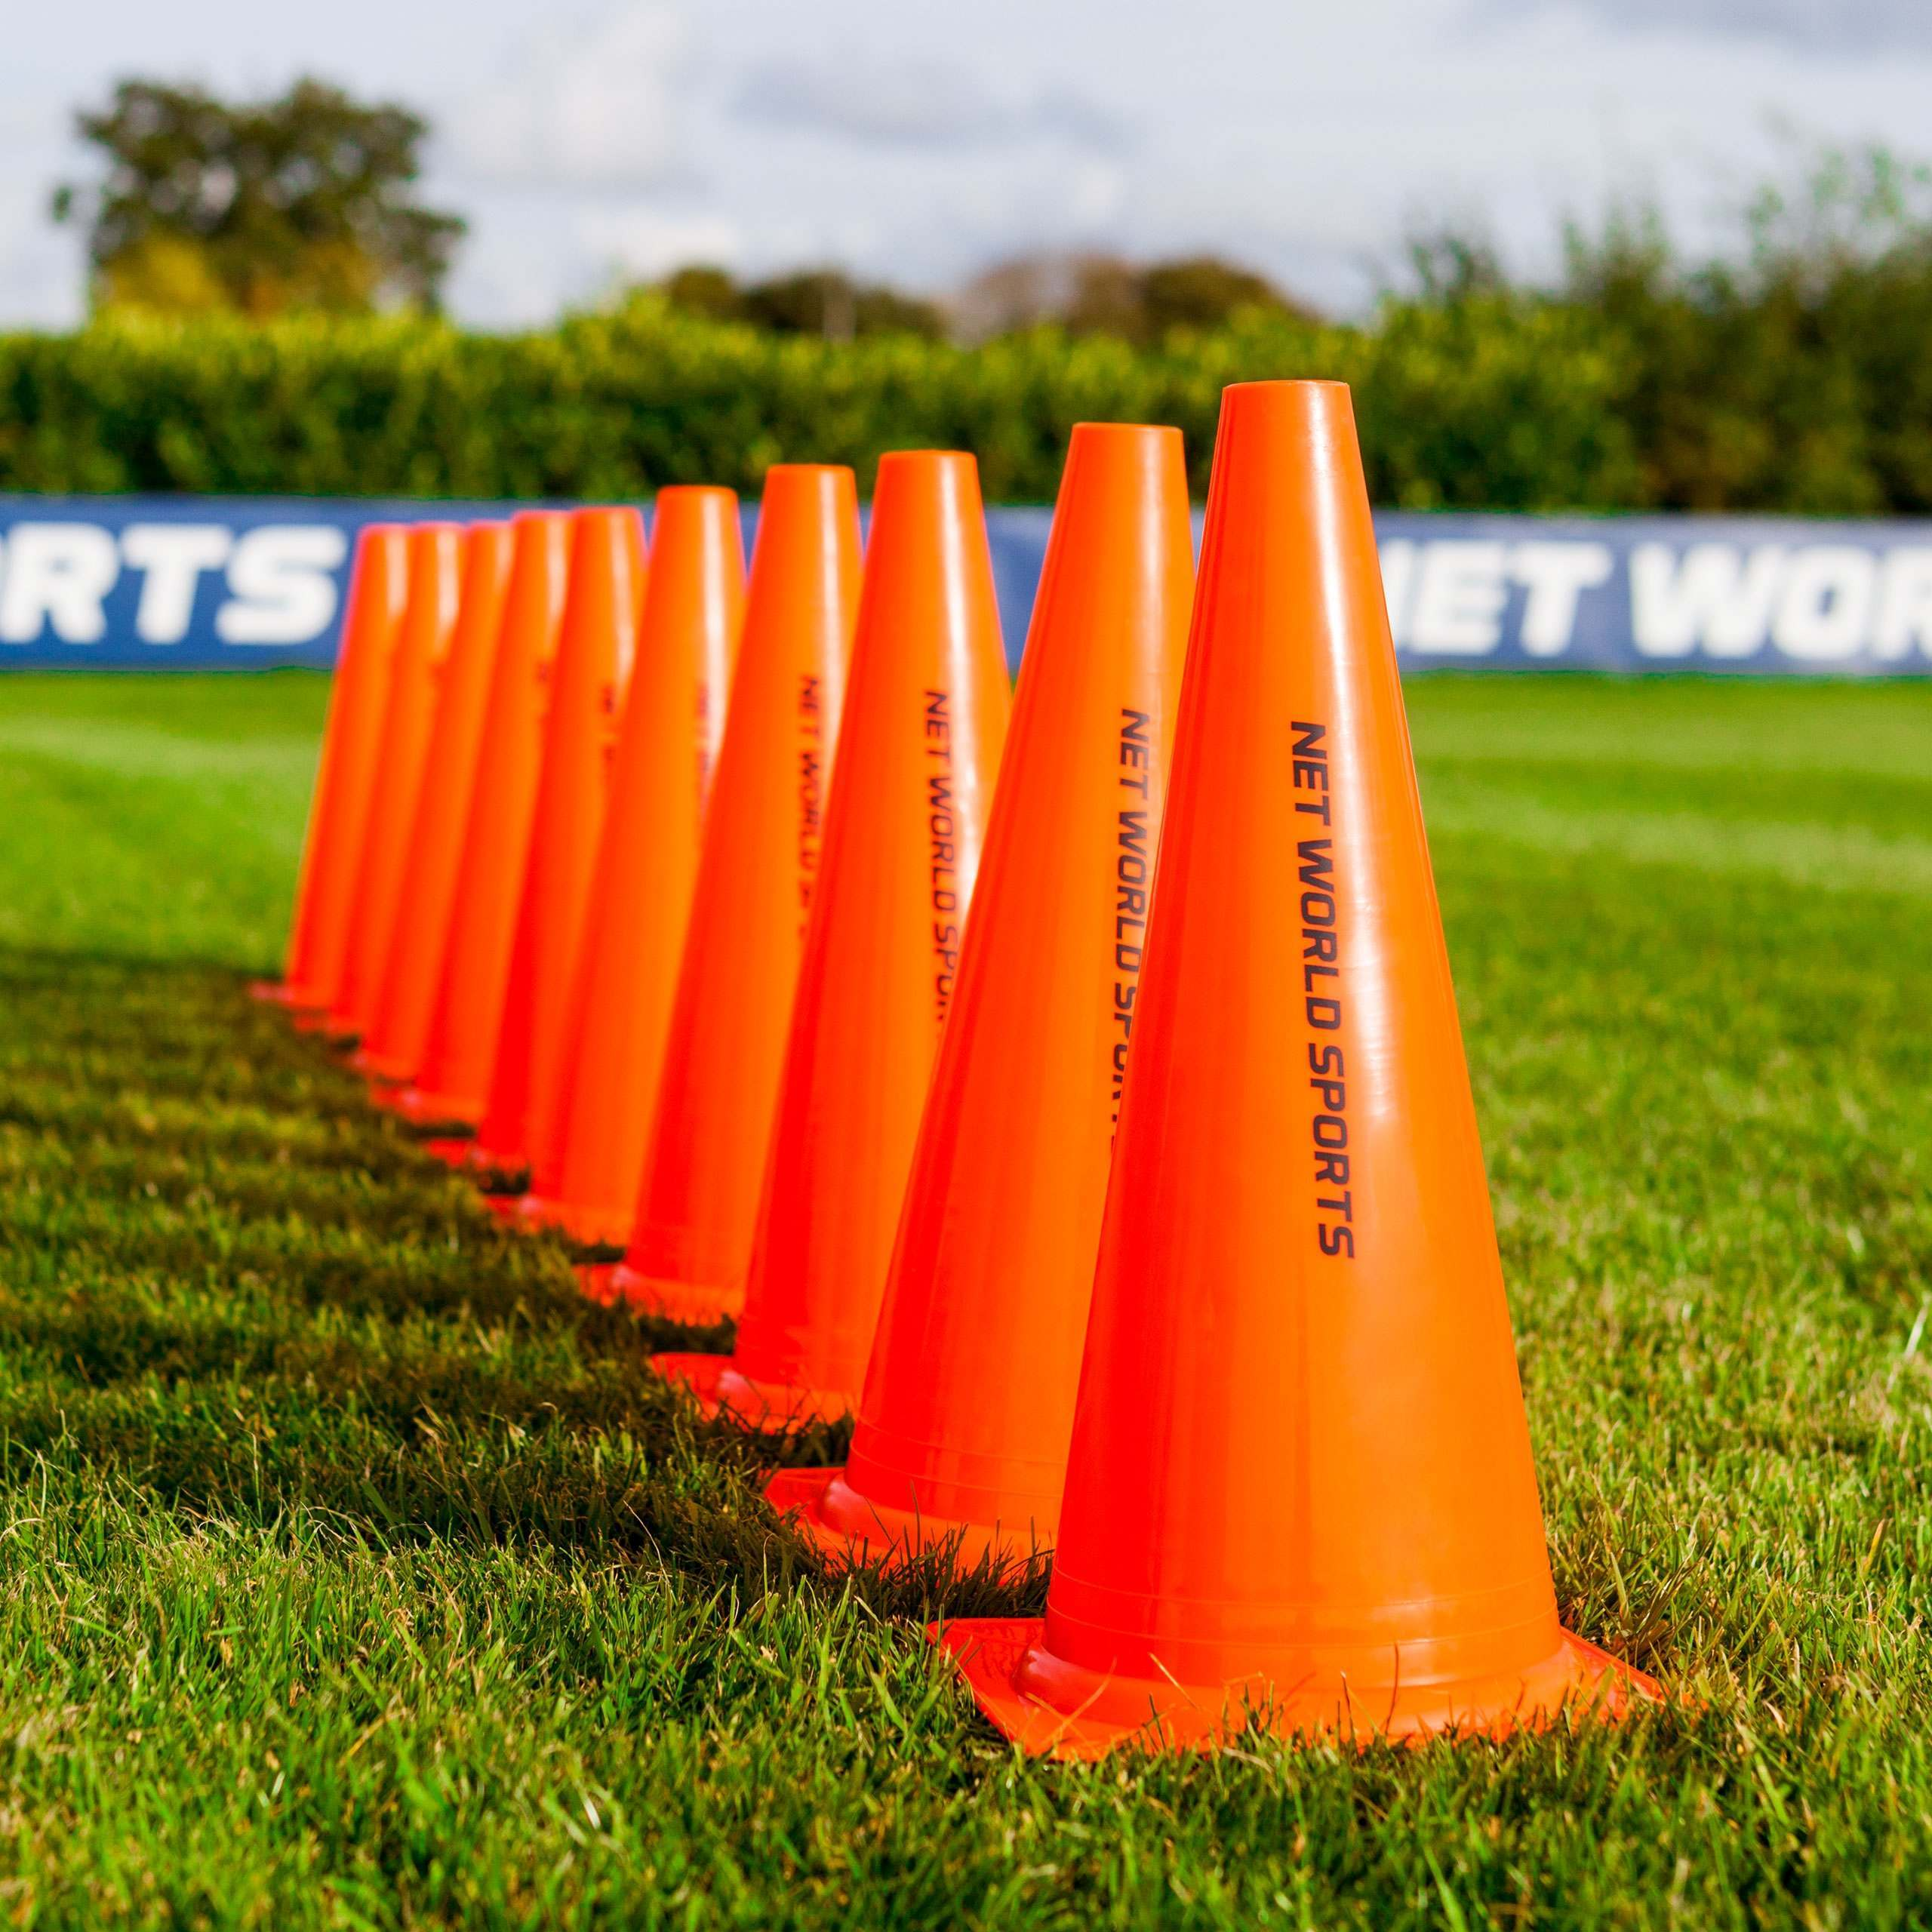 Forza Football Training Marker Cones Net World Sports